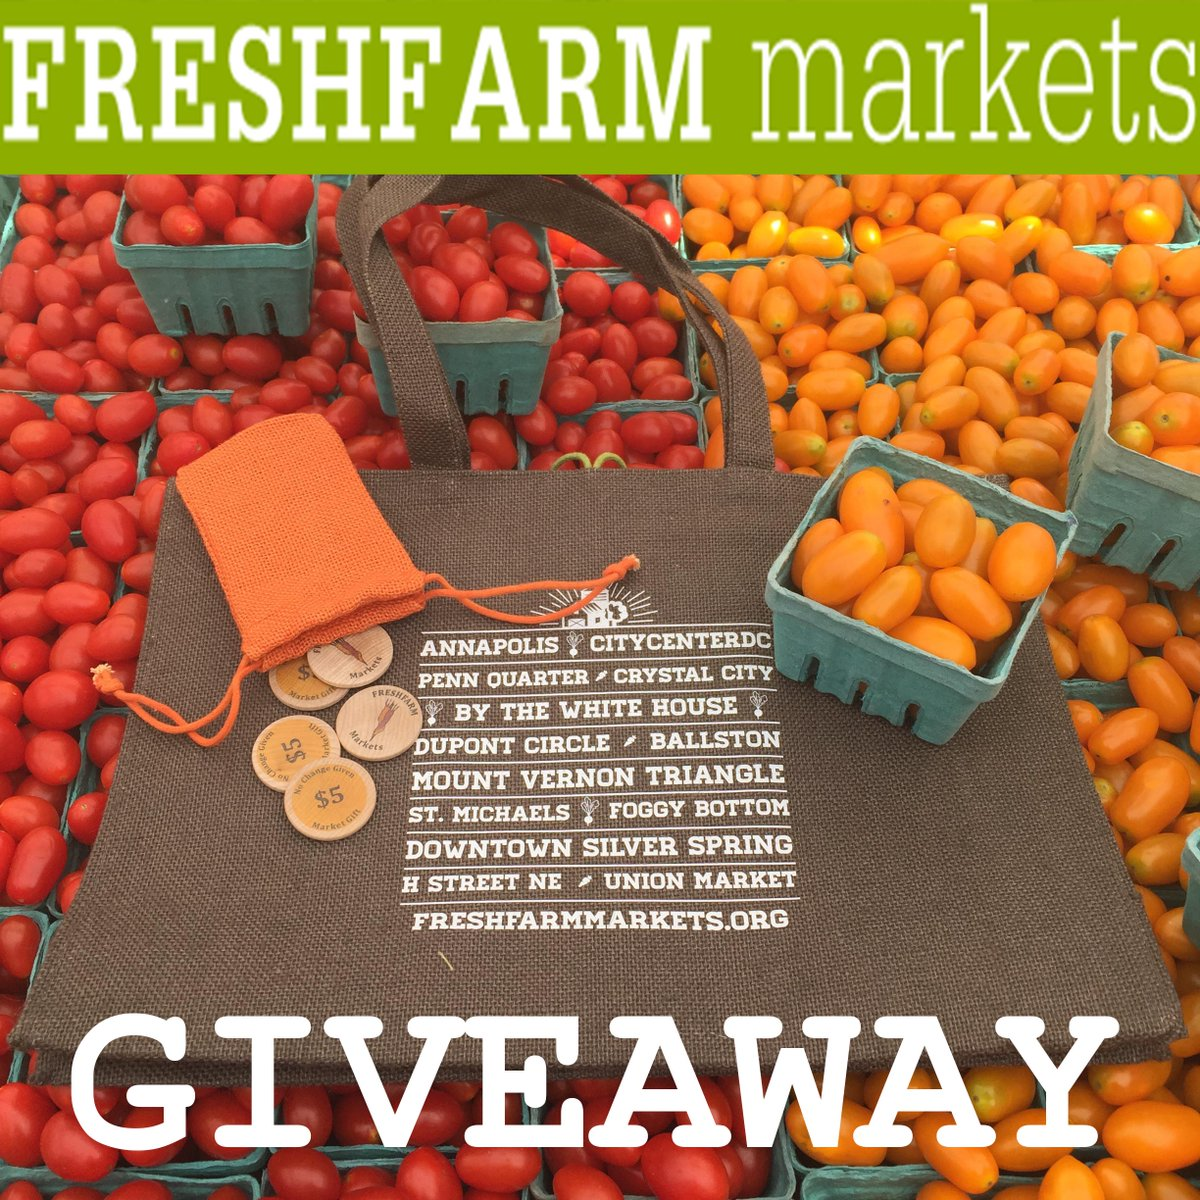 #NFMW giveaway! Tag a friend, retweet & favorite for your chance to win a @FRESHFARMMktsDC bag & $25 in tokens! http://t.co/AmCn4v5ecg